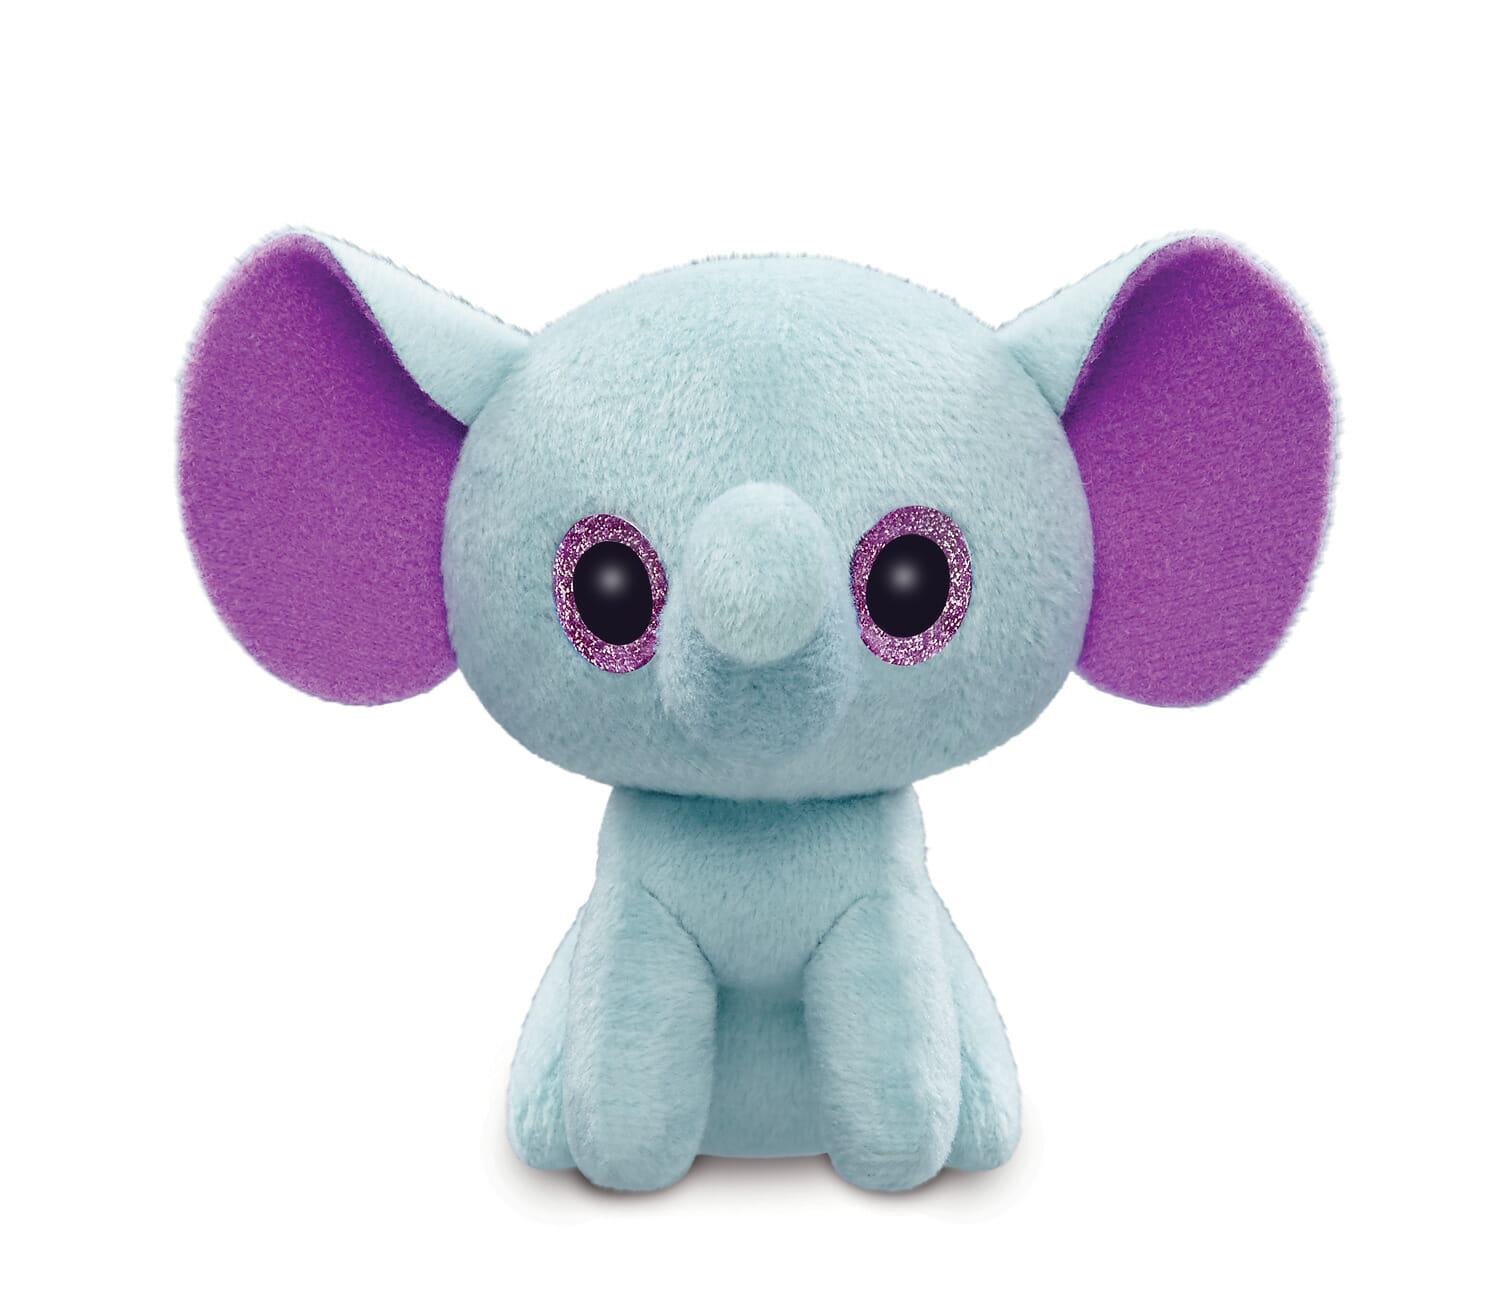 0d51cd67468 McDonald s new Happy Meal Toys have arrived  Teenie Beanie Boo s and ...